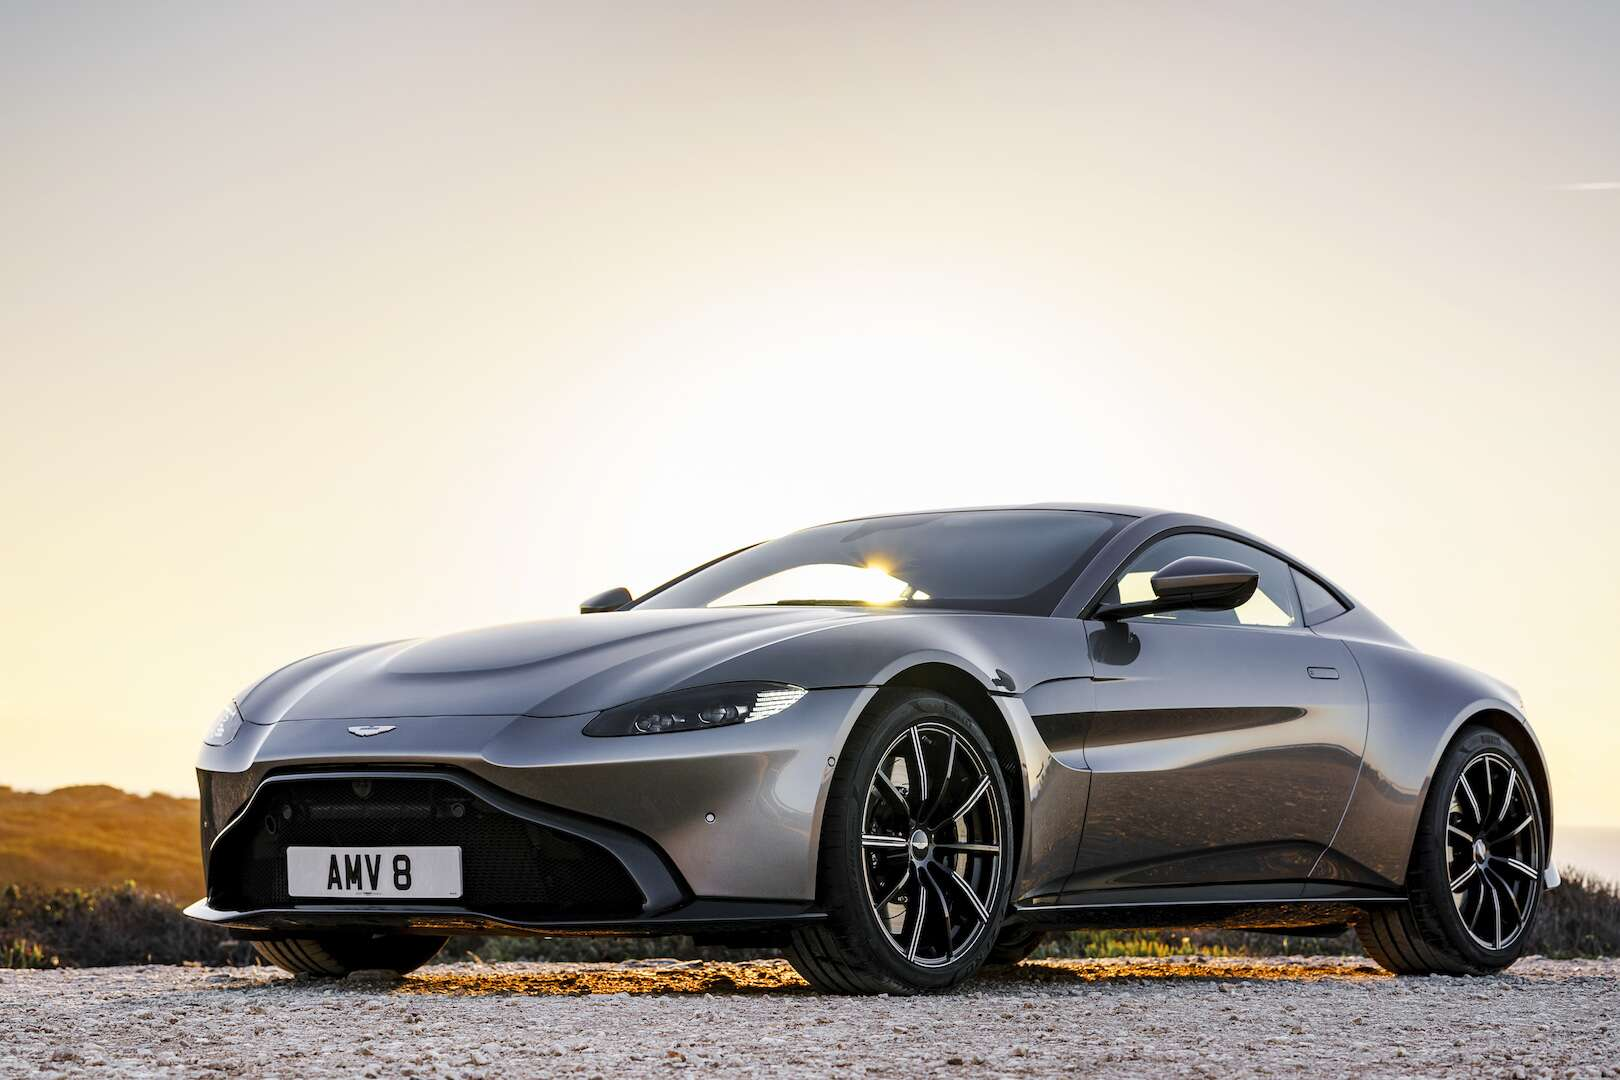 Aston Martin Vantage First Drive Review This MPH Predator - Aston martin sports car